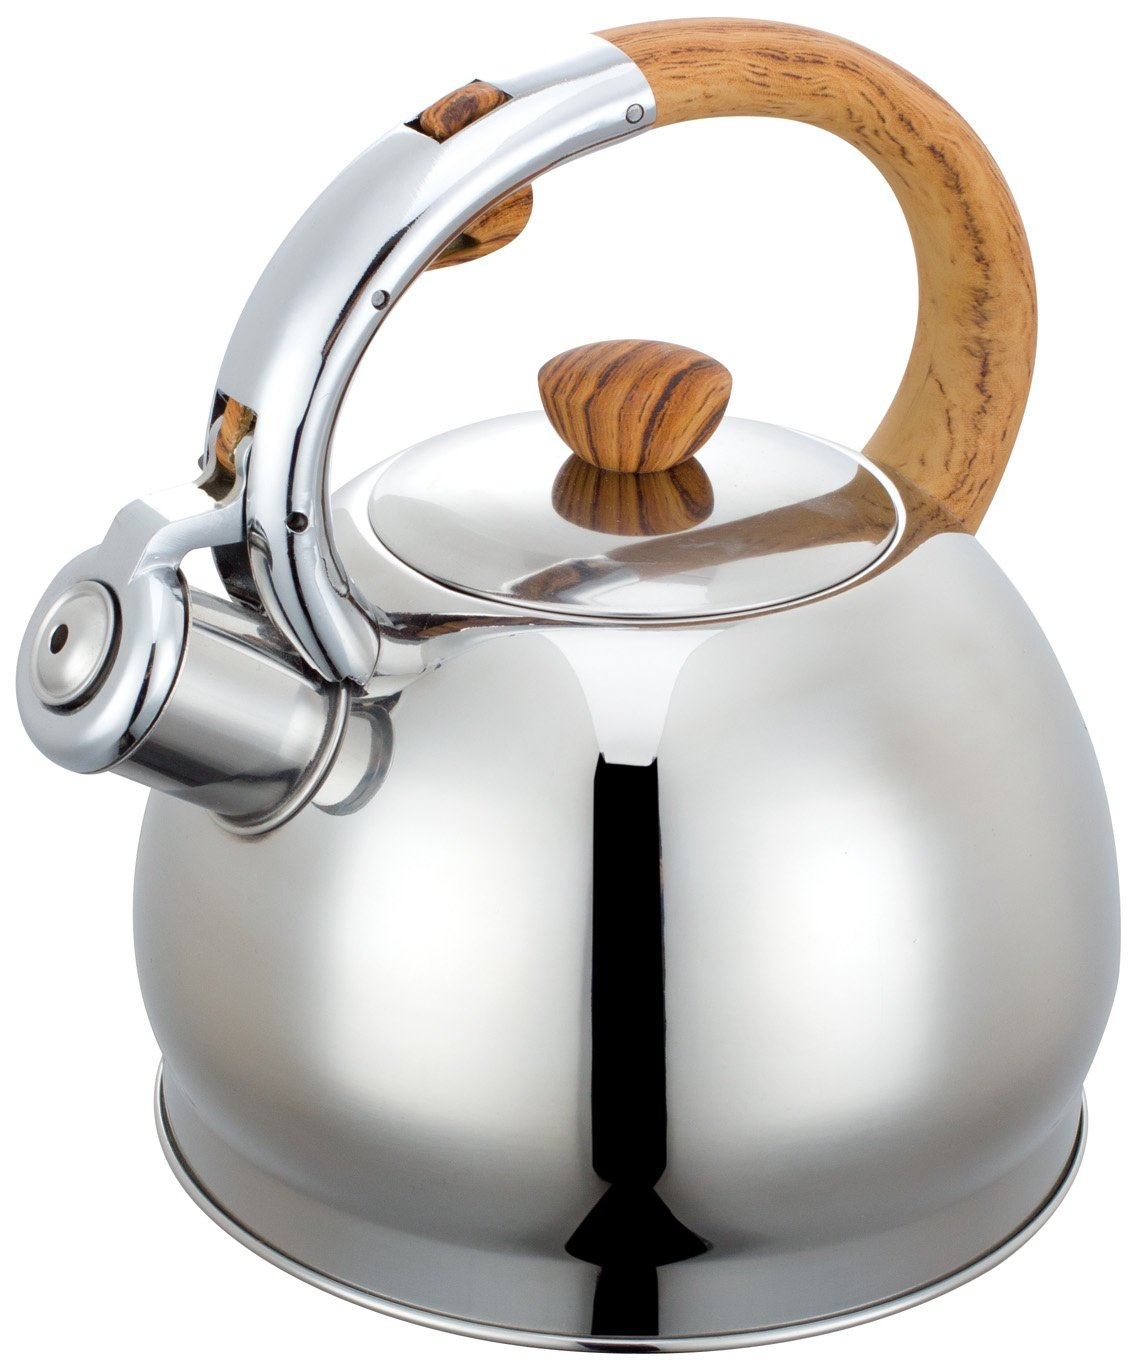 2.0 Litre Whistling Kettle Tea Water Jug Stainless Steel Kinghoff